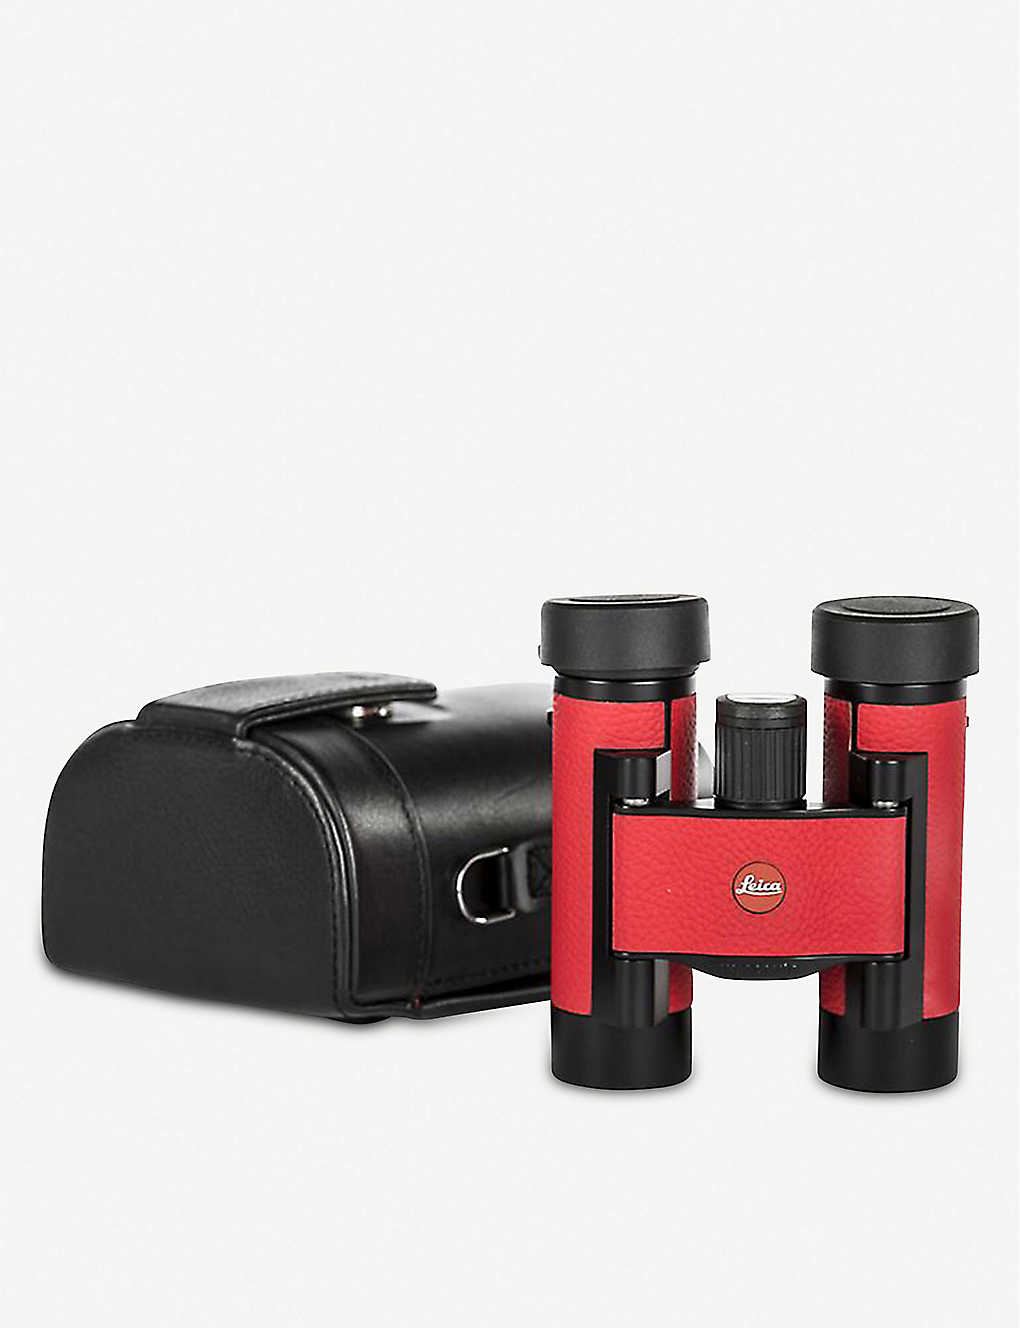 LEICA: Ultravid 8x20 Royal Opera House Edition